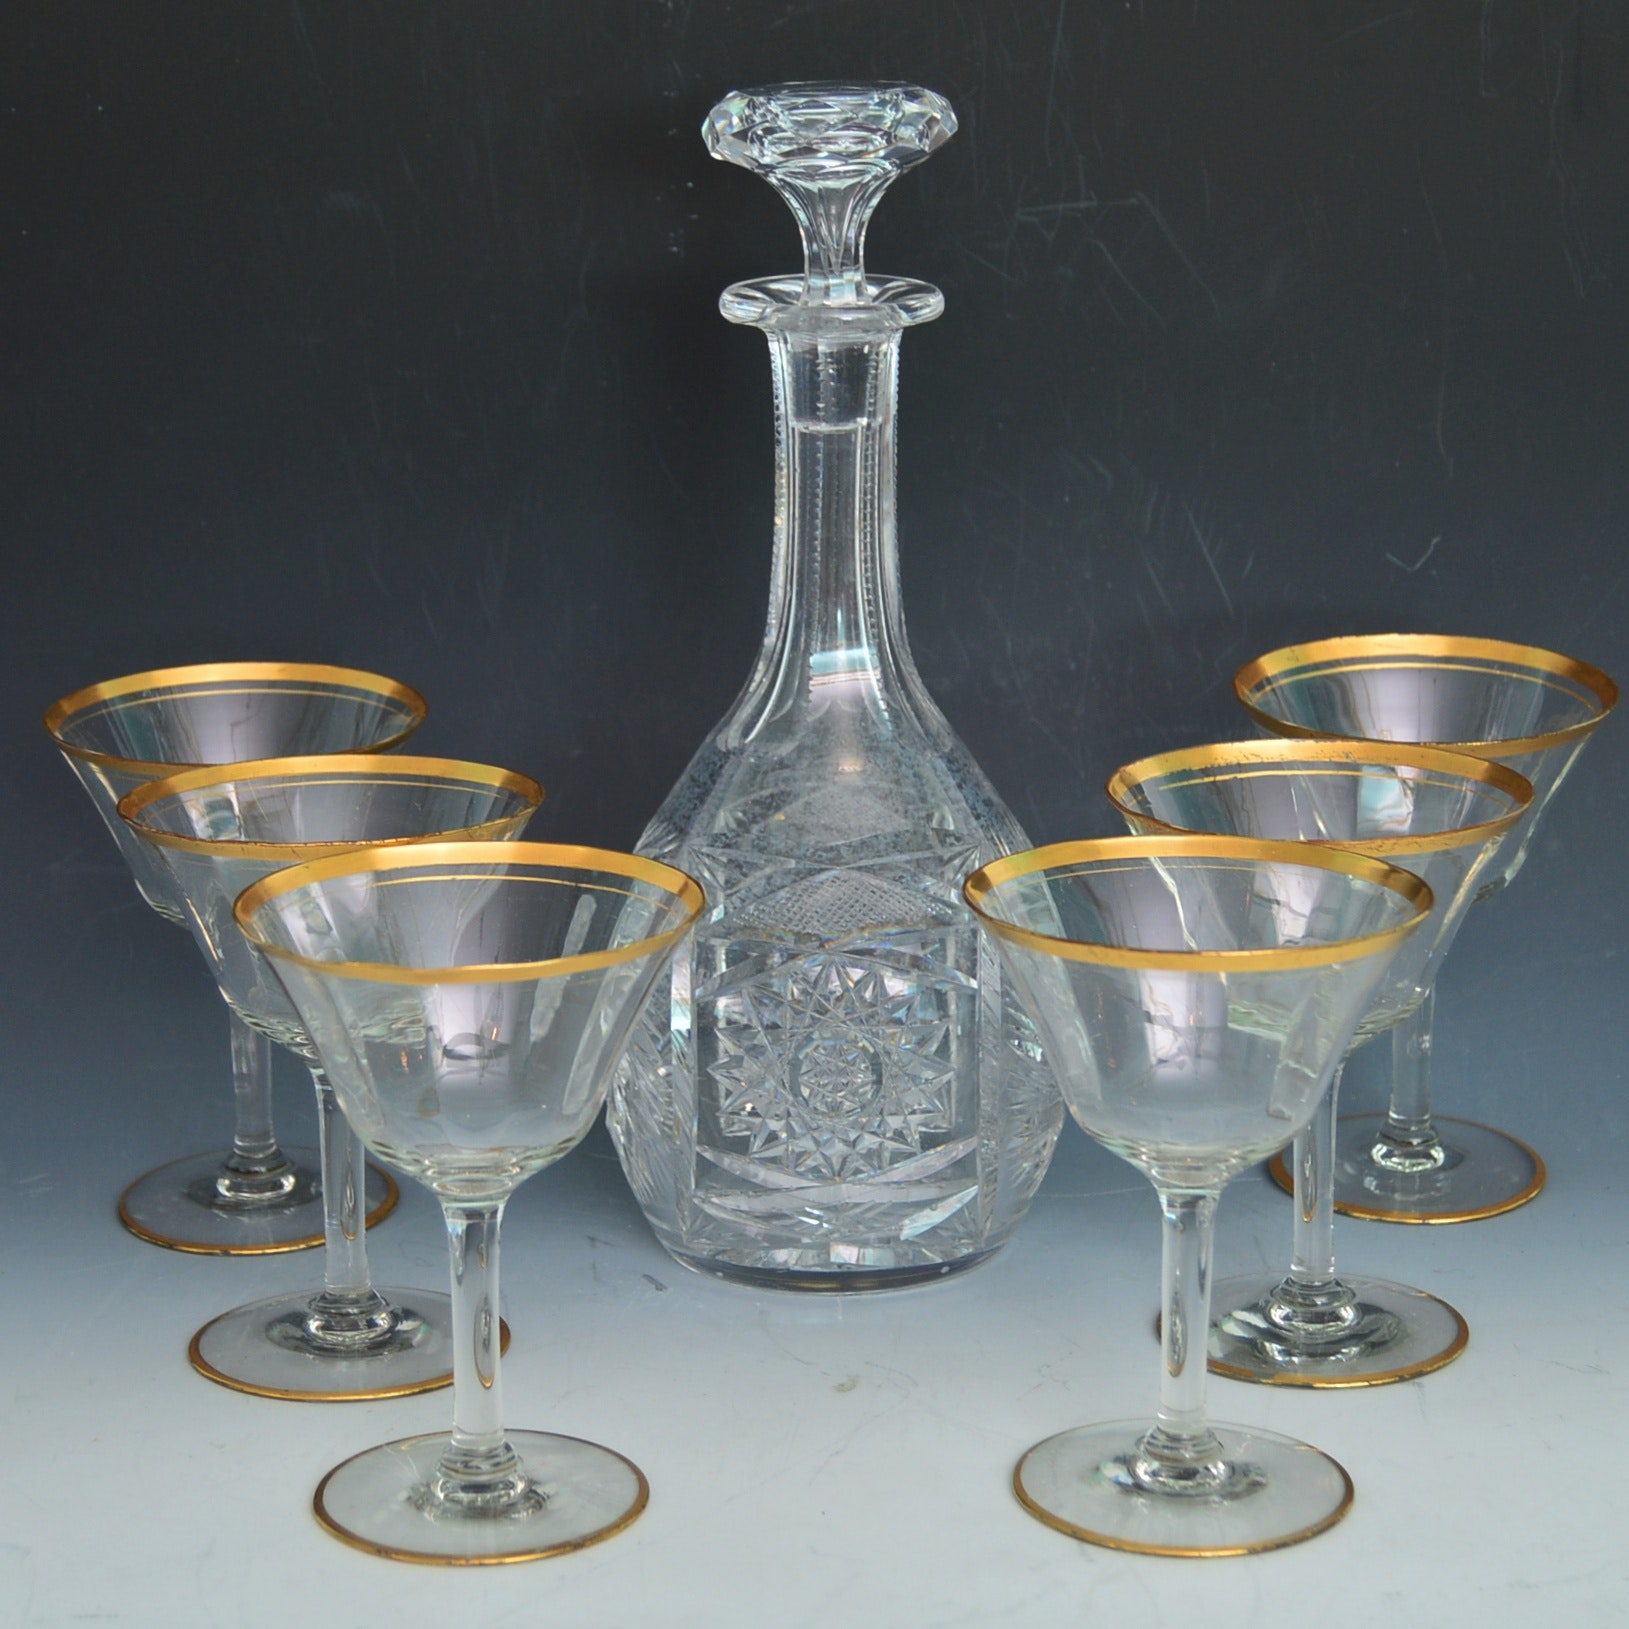 Set of Gold-Banded Champagne Coupes, Pressed Glass Liquor Decanter, Vintage